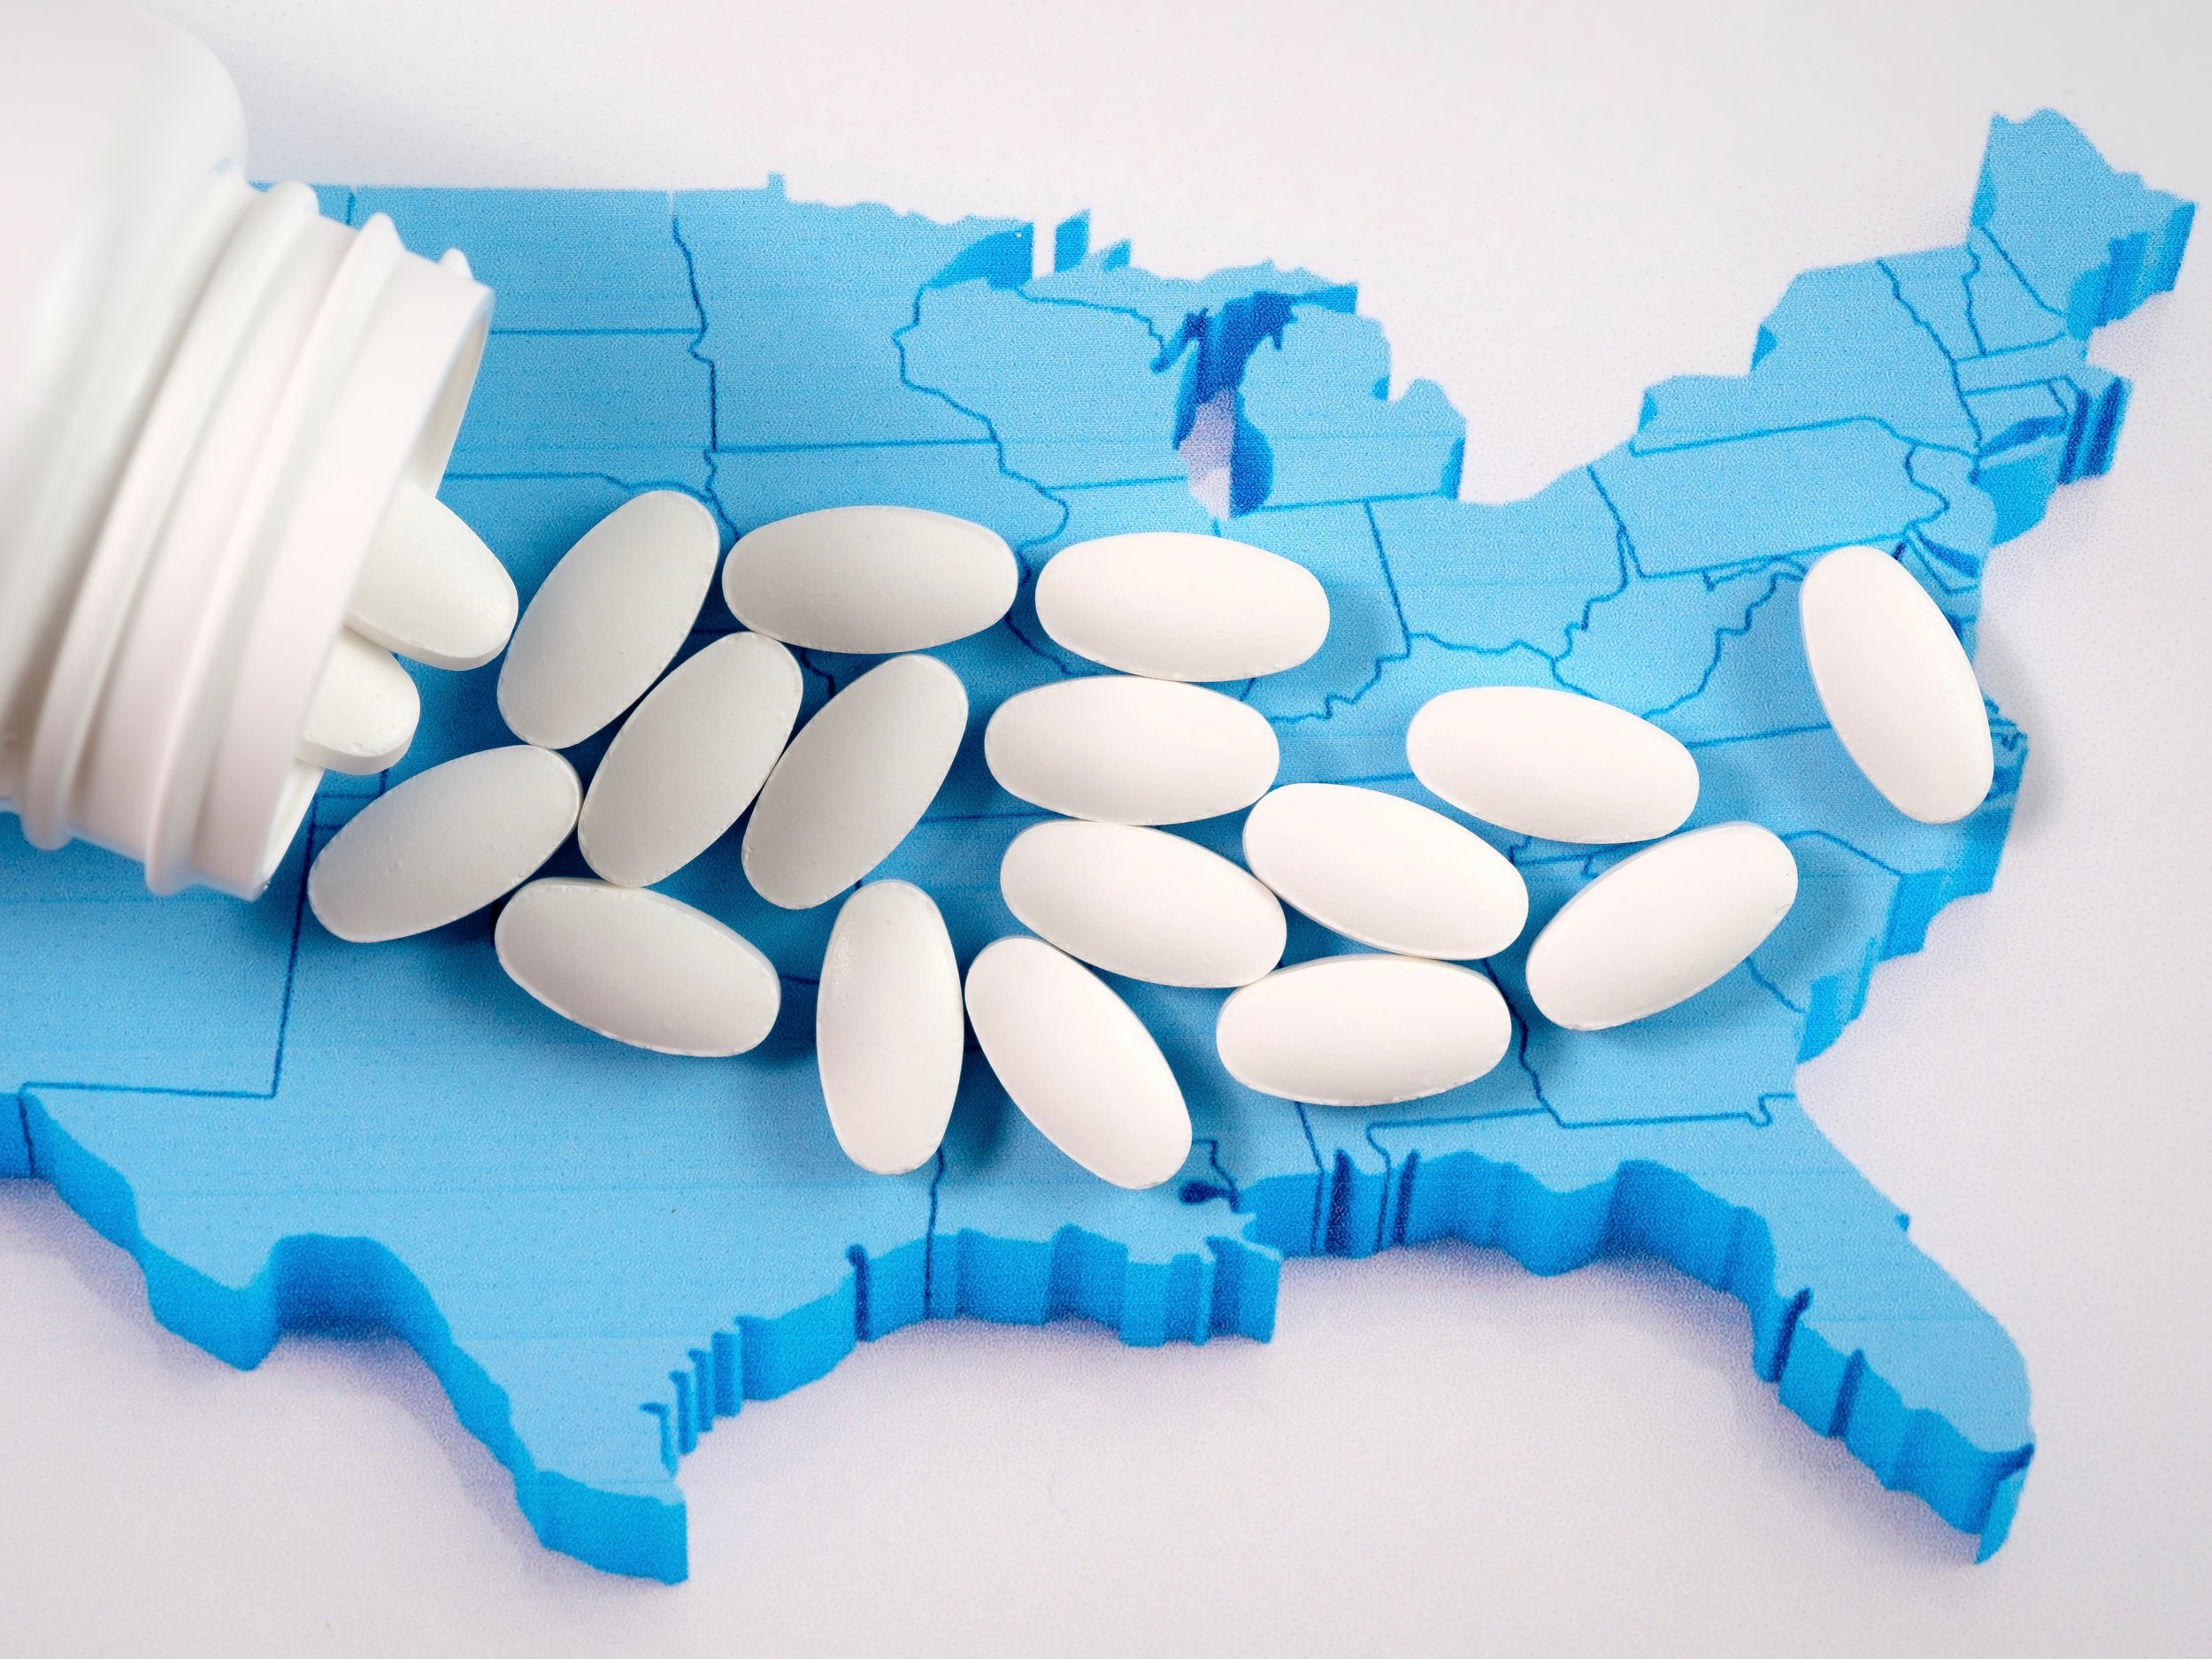 The nation is fighting an opioid epidemic, but as overdose deaths declined slightly nationally they rose 16.8 percent in Illinois last year. (Shutterstock)